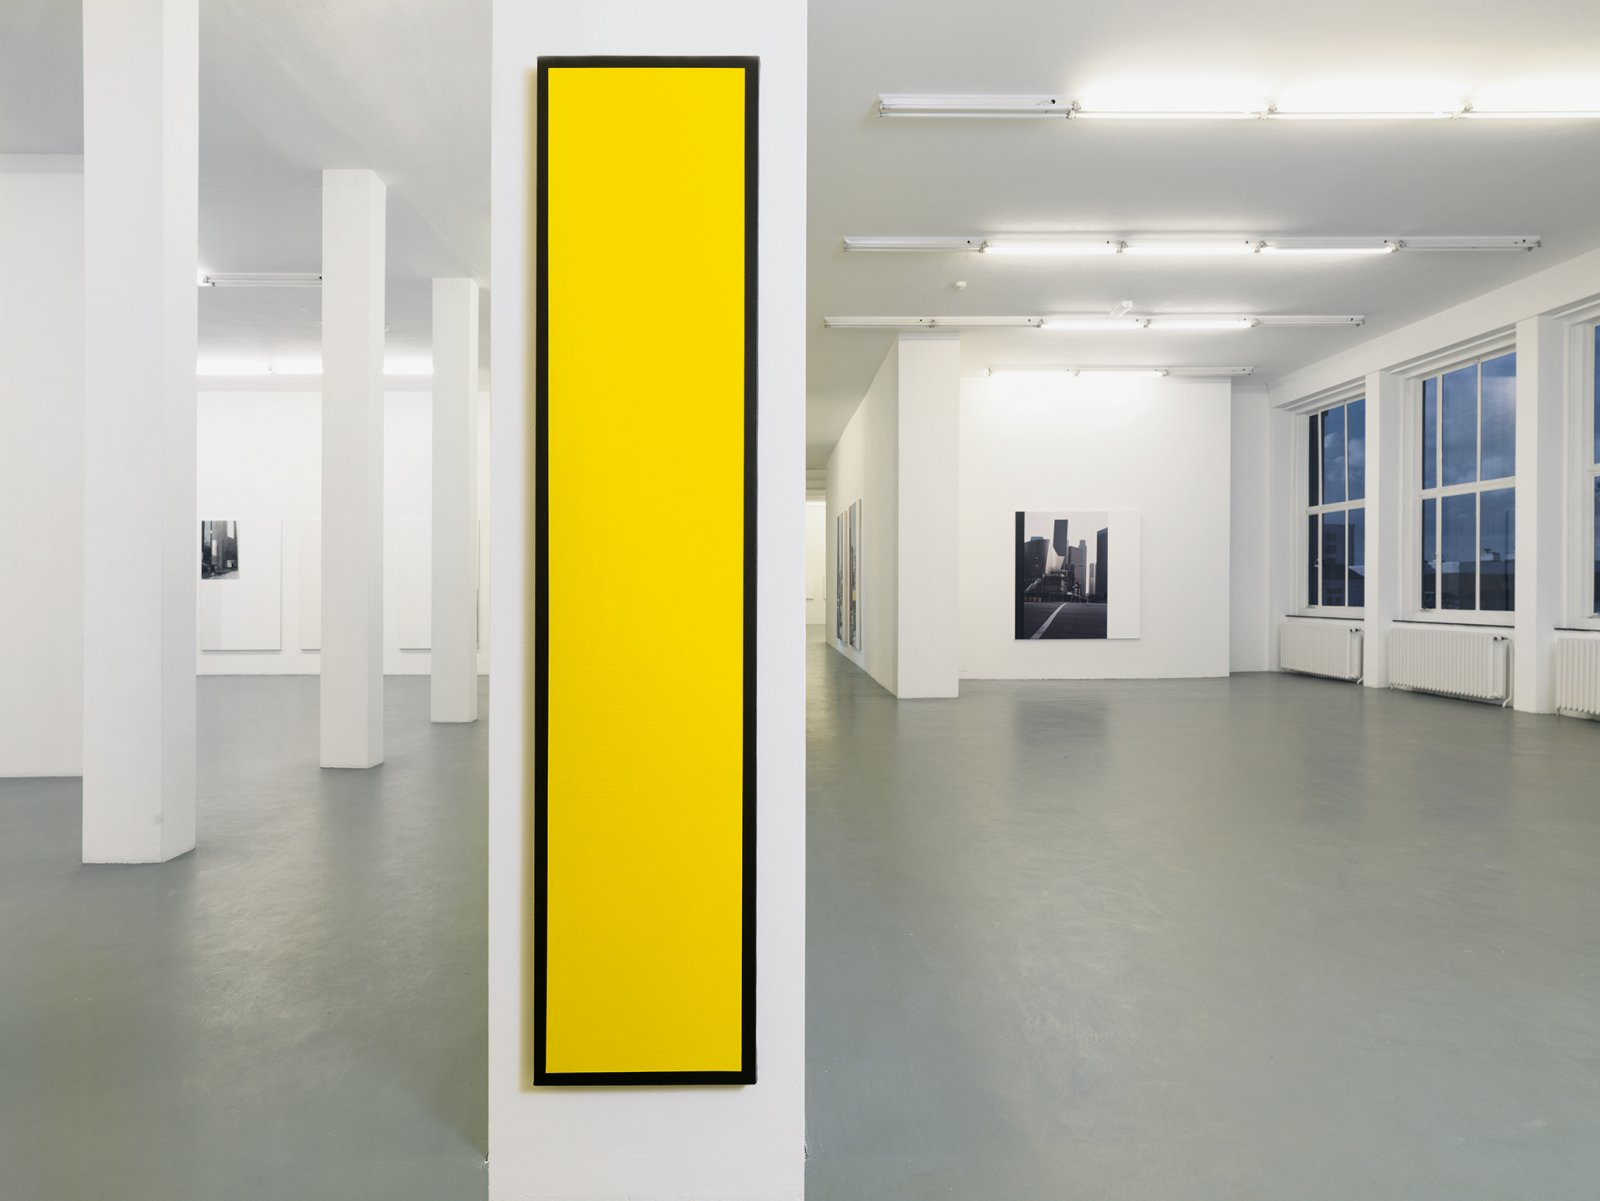 ​​​Ian Wallace, ​Untitled (Yellow Monochrome with Black), 1967–2008, acrylic on canvas, 90 x 20 in. (228 x 50 cm). Installation view, ​A Literature of Images​, Witte de With, Rotterdam, 2008​​​​ by Ian Wallace